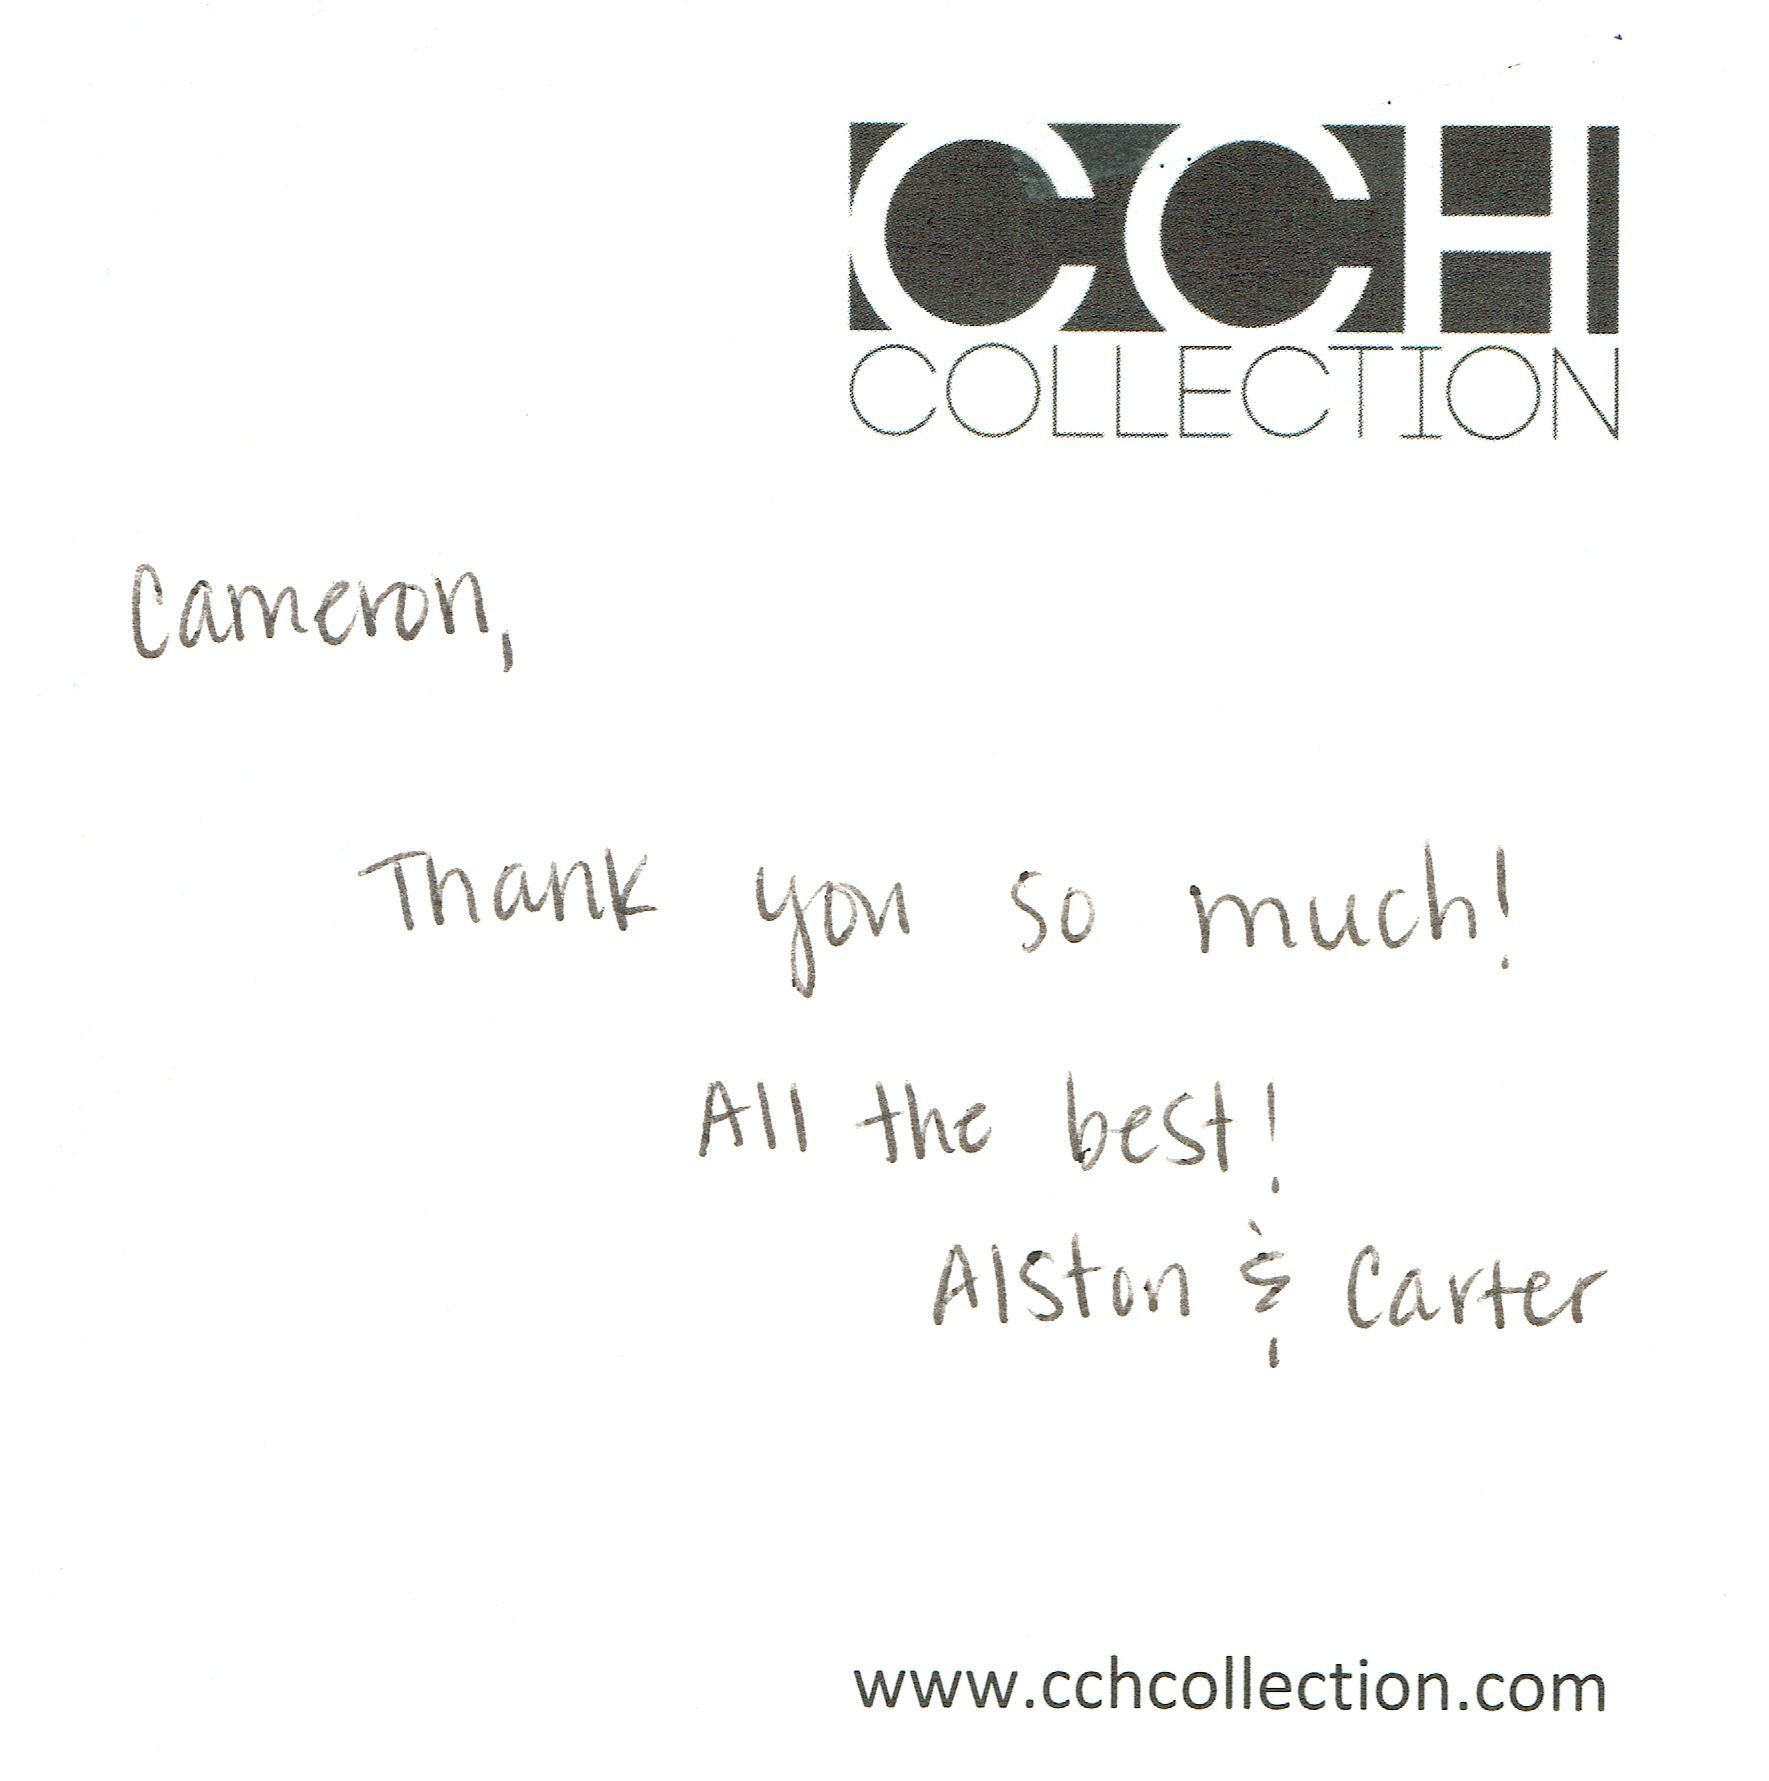 Thank you note - Alston & Carter